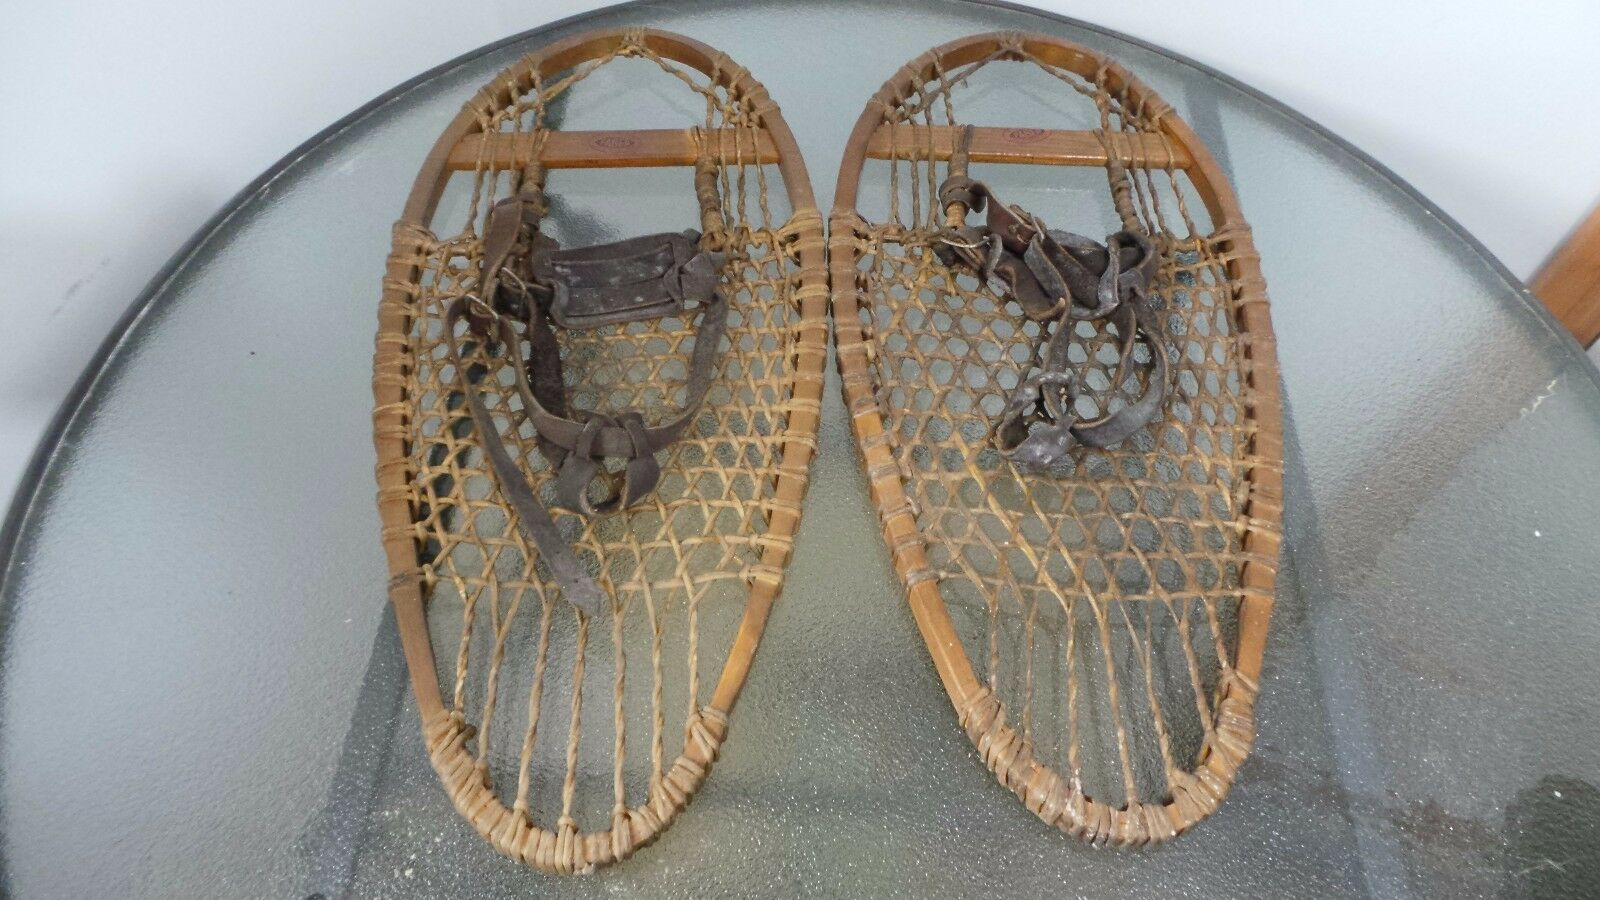 GREAT  OLD Snowshoes 25  Long by 11  wide with OLD LEATHER Bindings Signed FABER  on sale